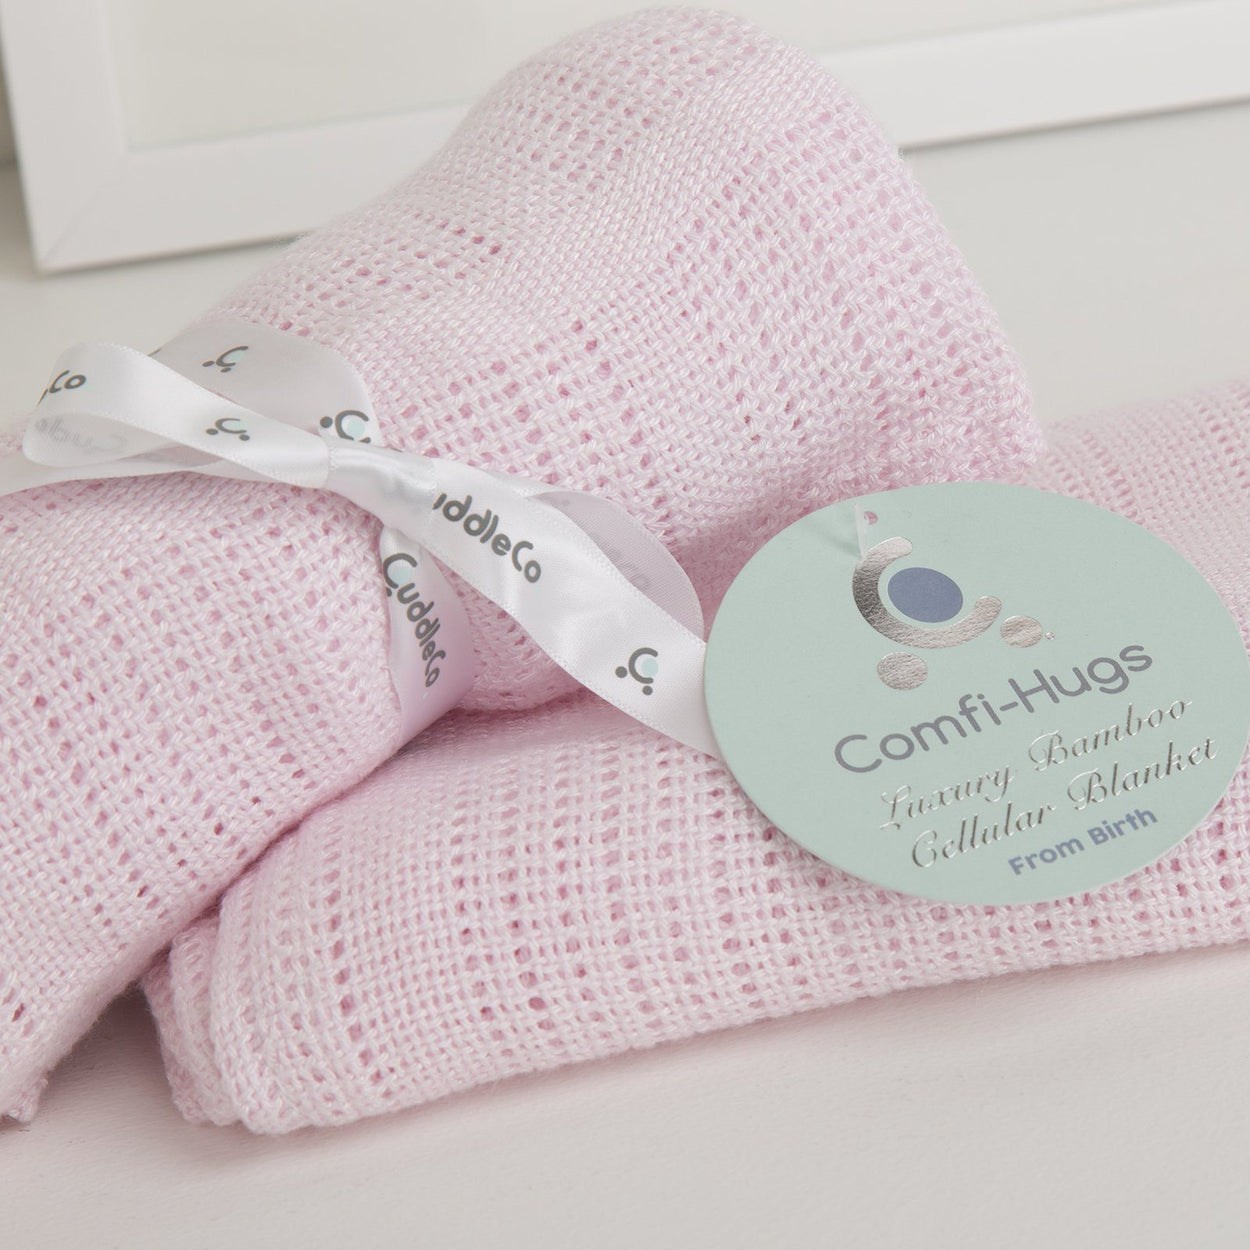 comfi hugs luxury bamboo cellular blanket pink